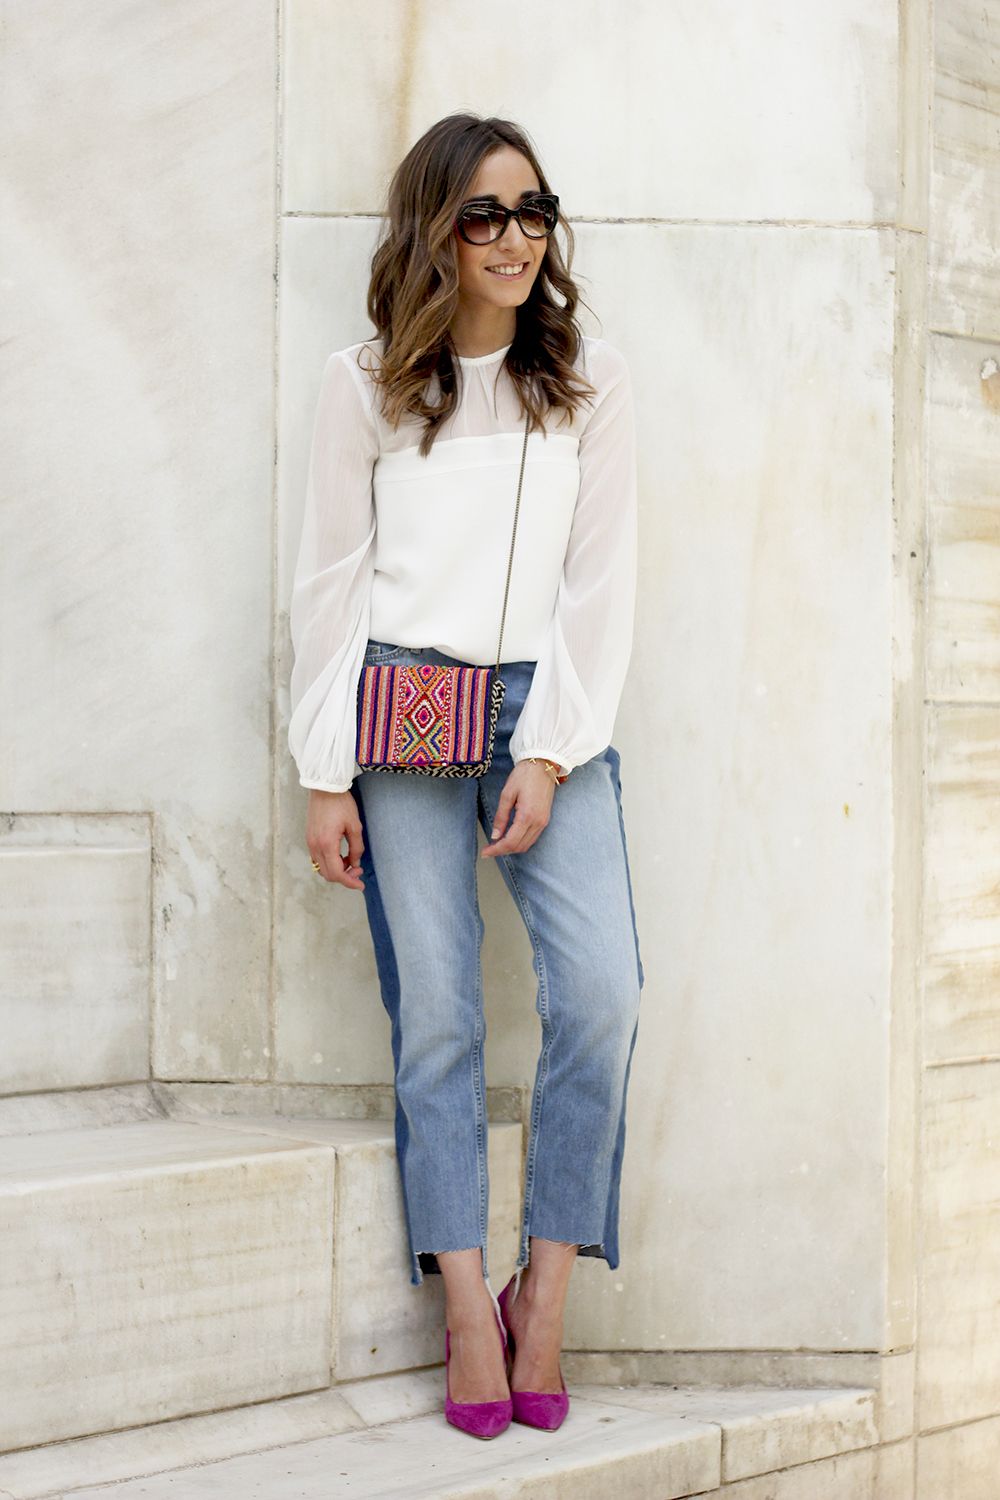 Boyfriend Jeans With Asymmetrical Hems white blouse carolina herrera heels daydaday bag outfit style streetstyle17